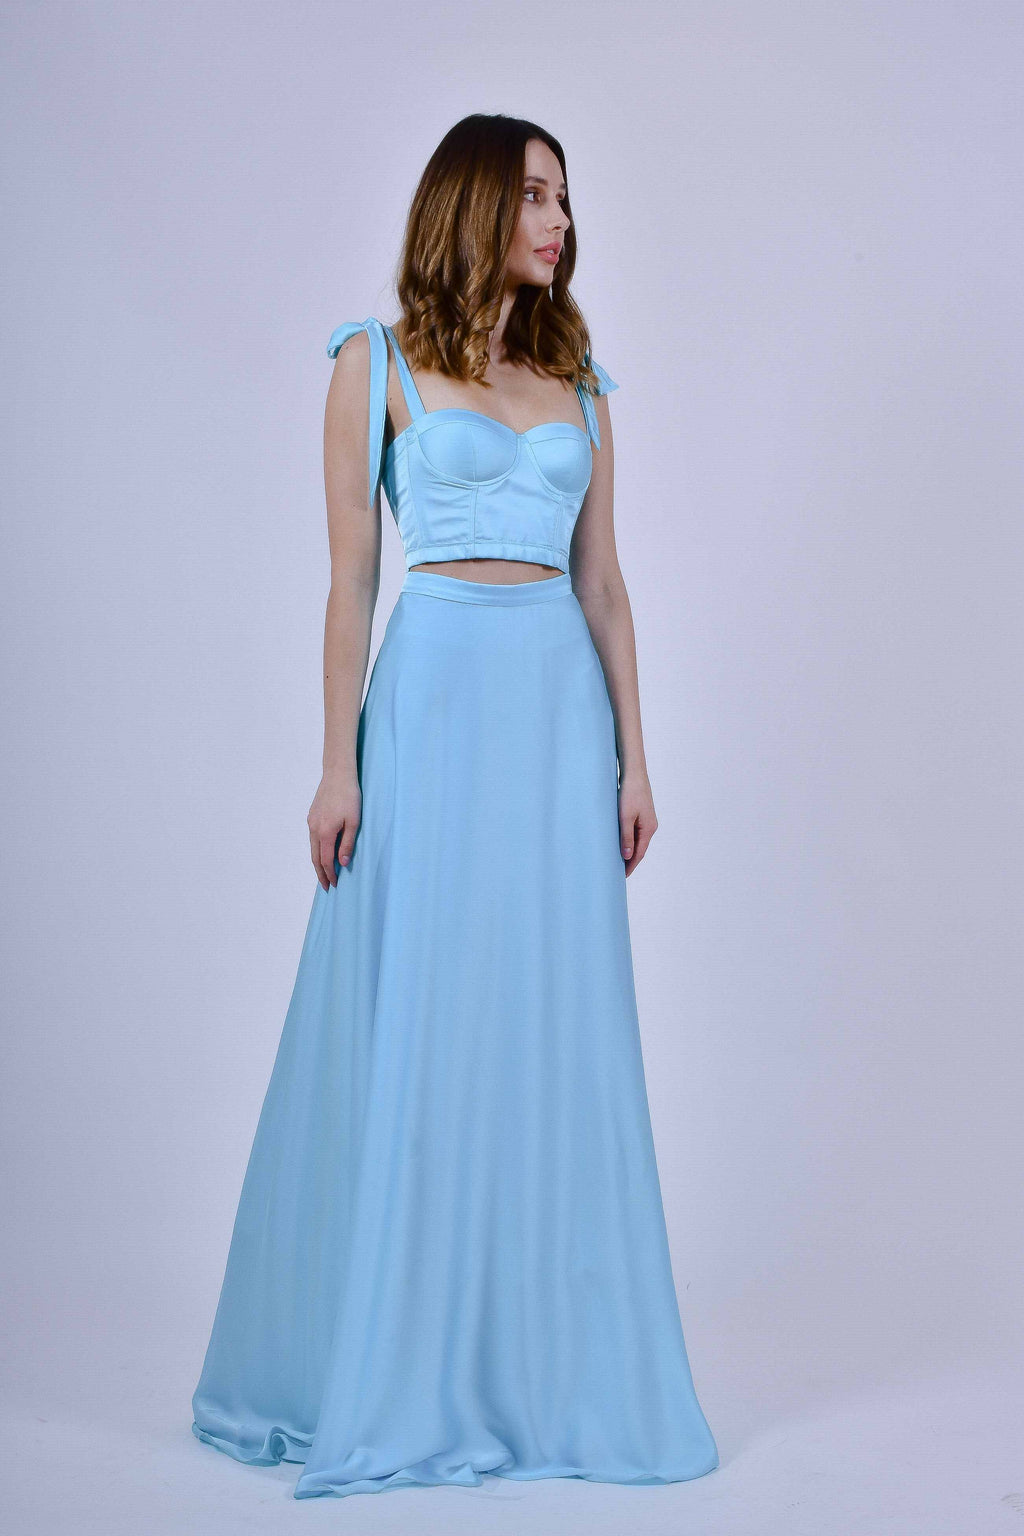 Teal Blue Two Piece Corset and Skirt In Armani Silk